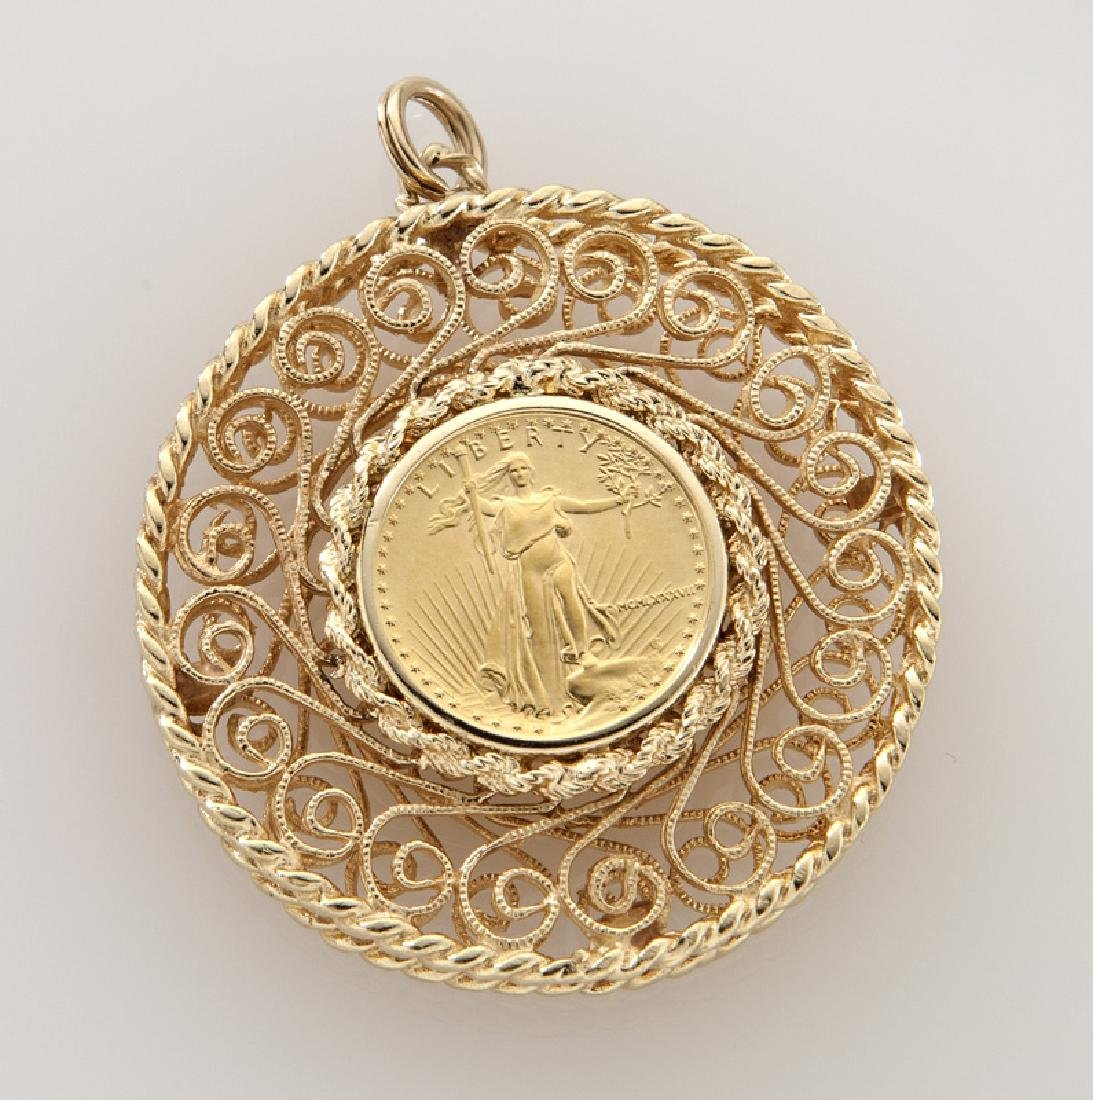 Liberty $5 gold coin in a 14K frame.